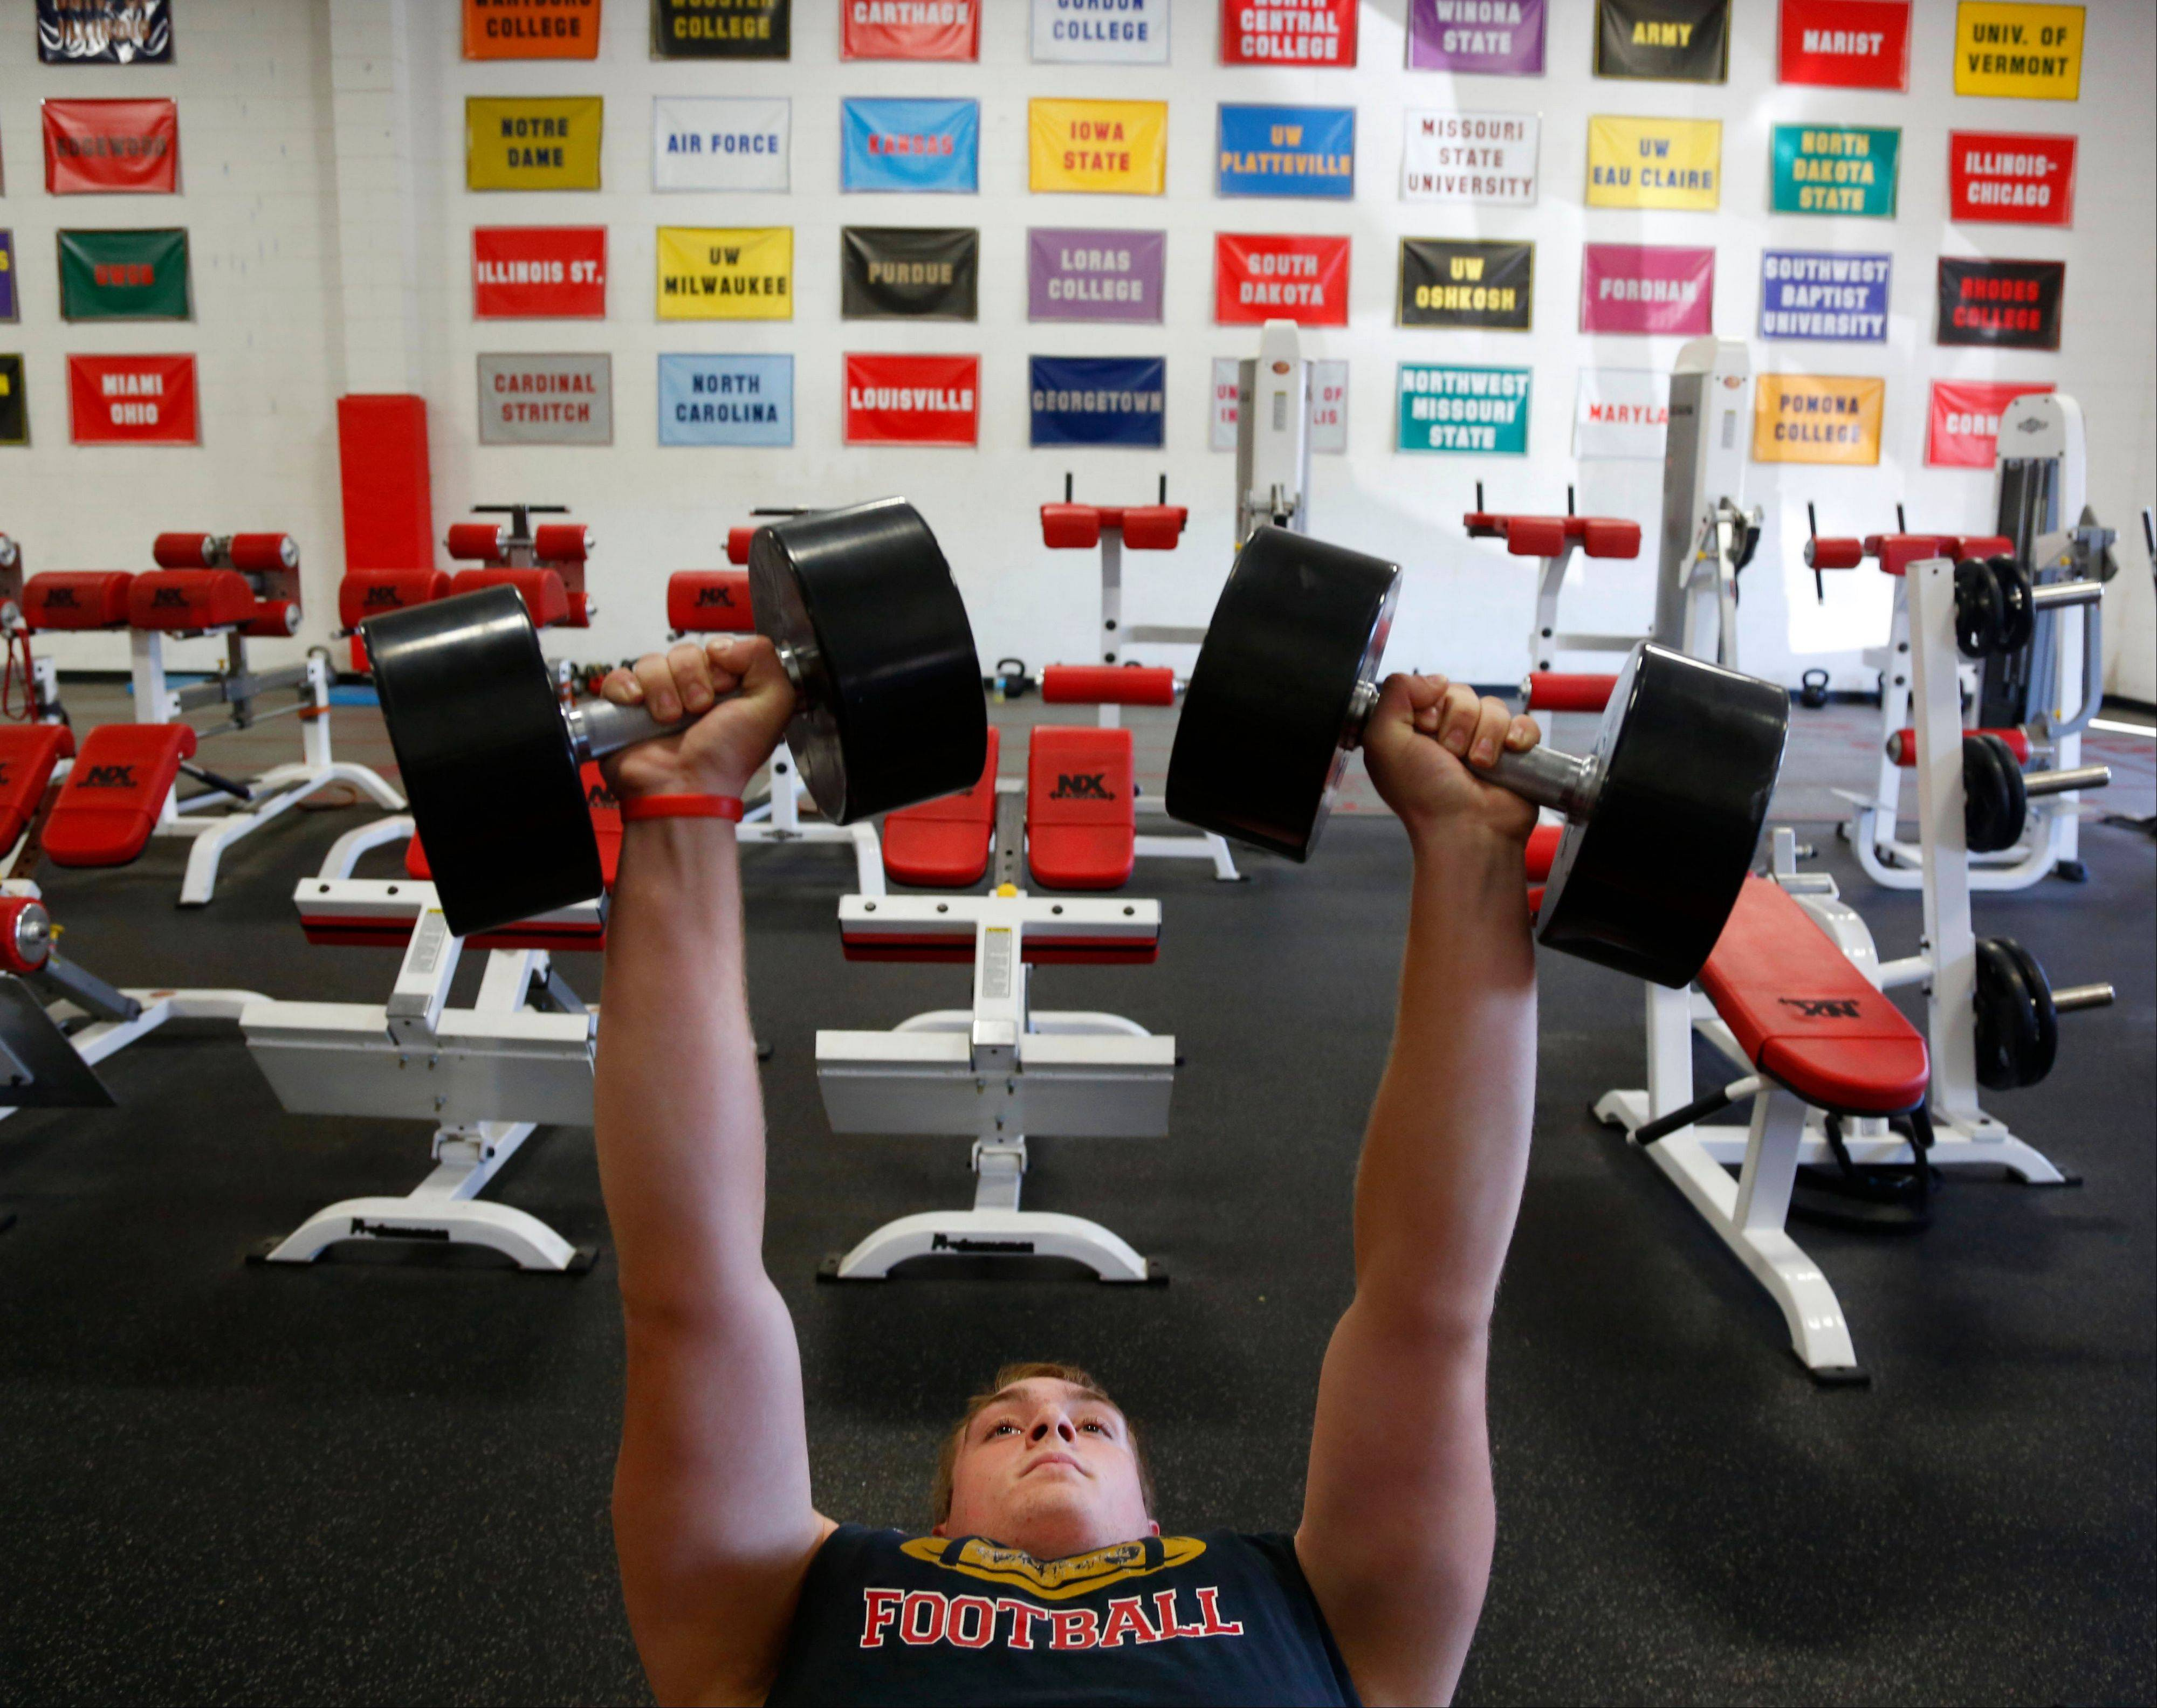 Billy Hirschfield, 16, lifts weights during a workout at NX Level, an elite training facility in Waukesha, Wis. The 6-foot-6, 270-pound high school junior and varsity football player is being recruited by major college football teams.